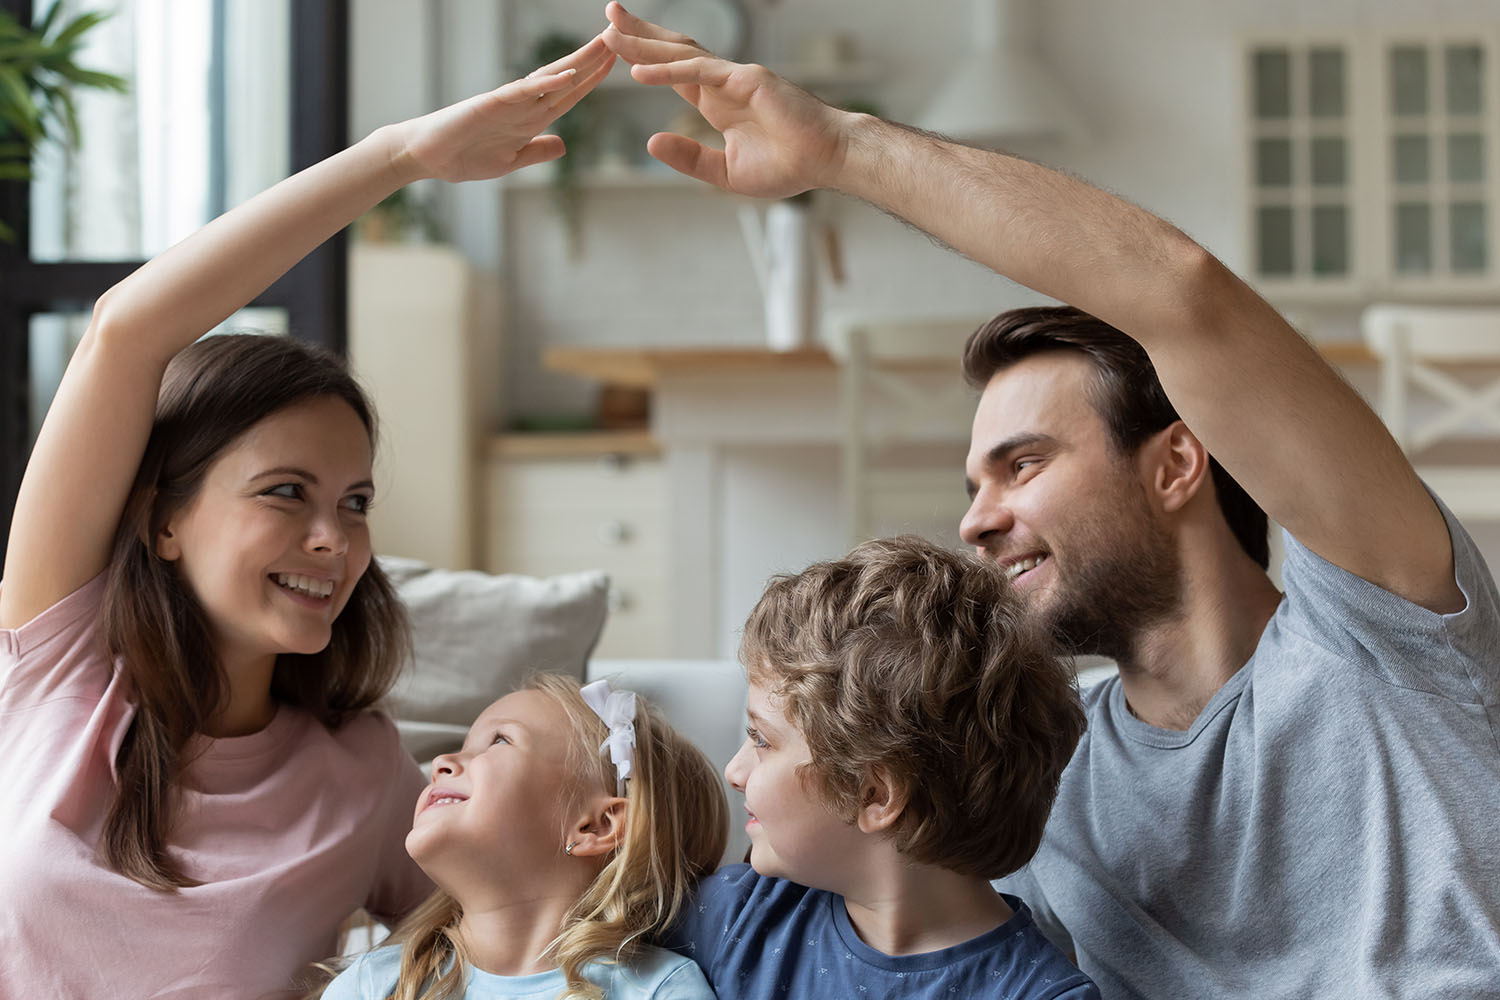 Smiling parents sitting with kids, making roof gesture with hands